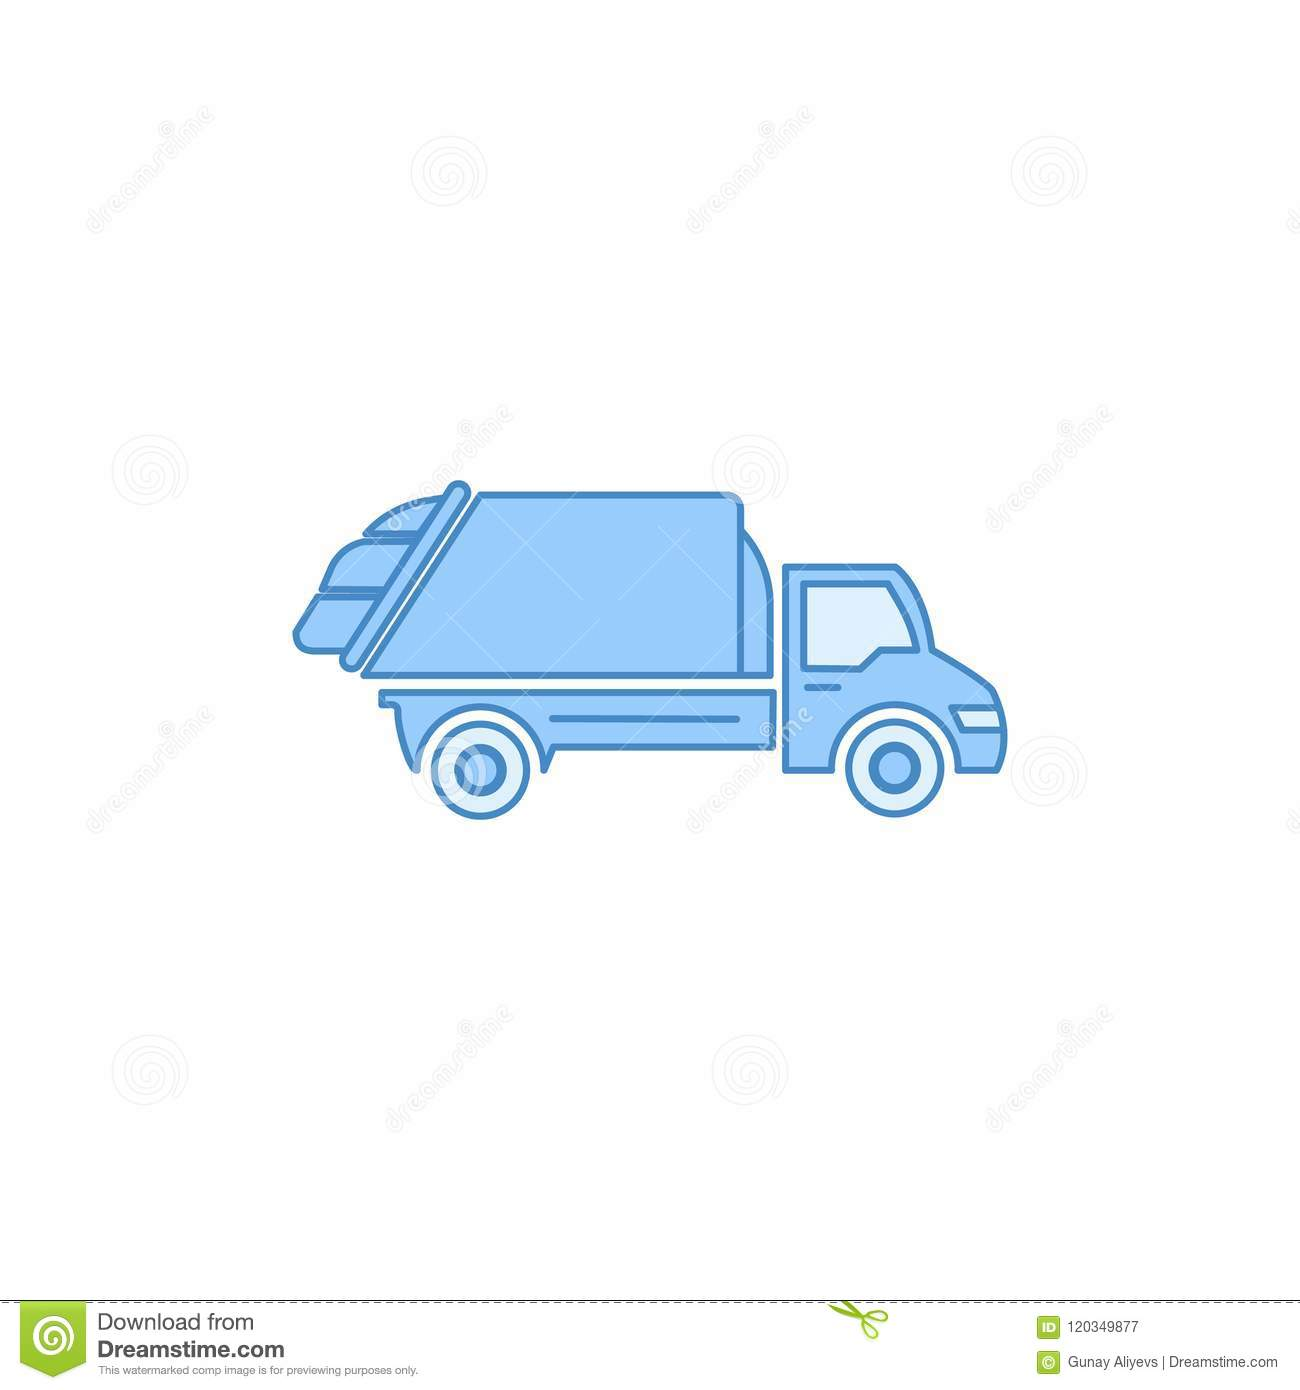 Garbage Truck Filled Outline Icon Element Of Transport For Mobile Concept And Web Apps